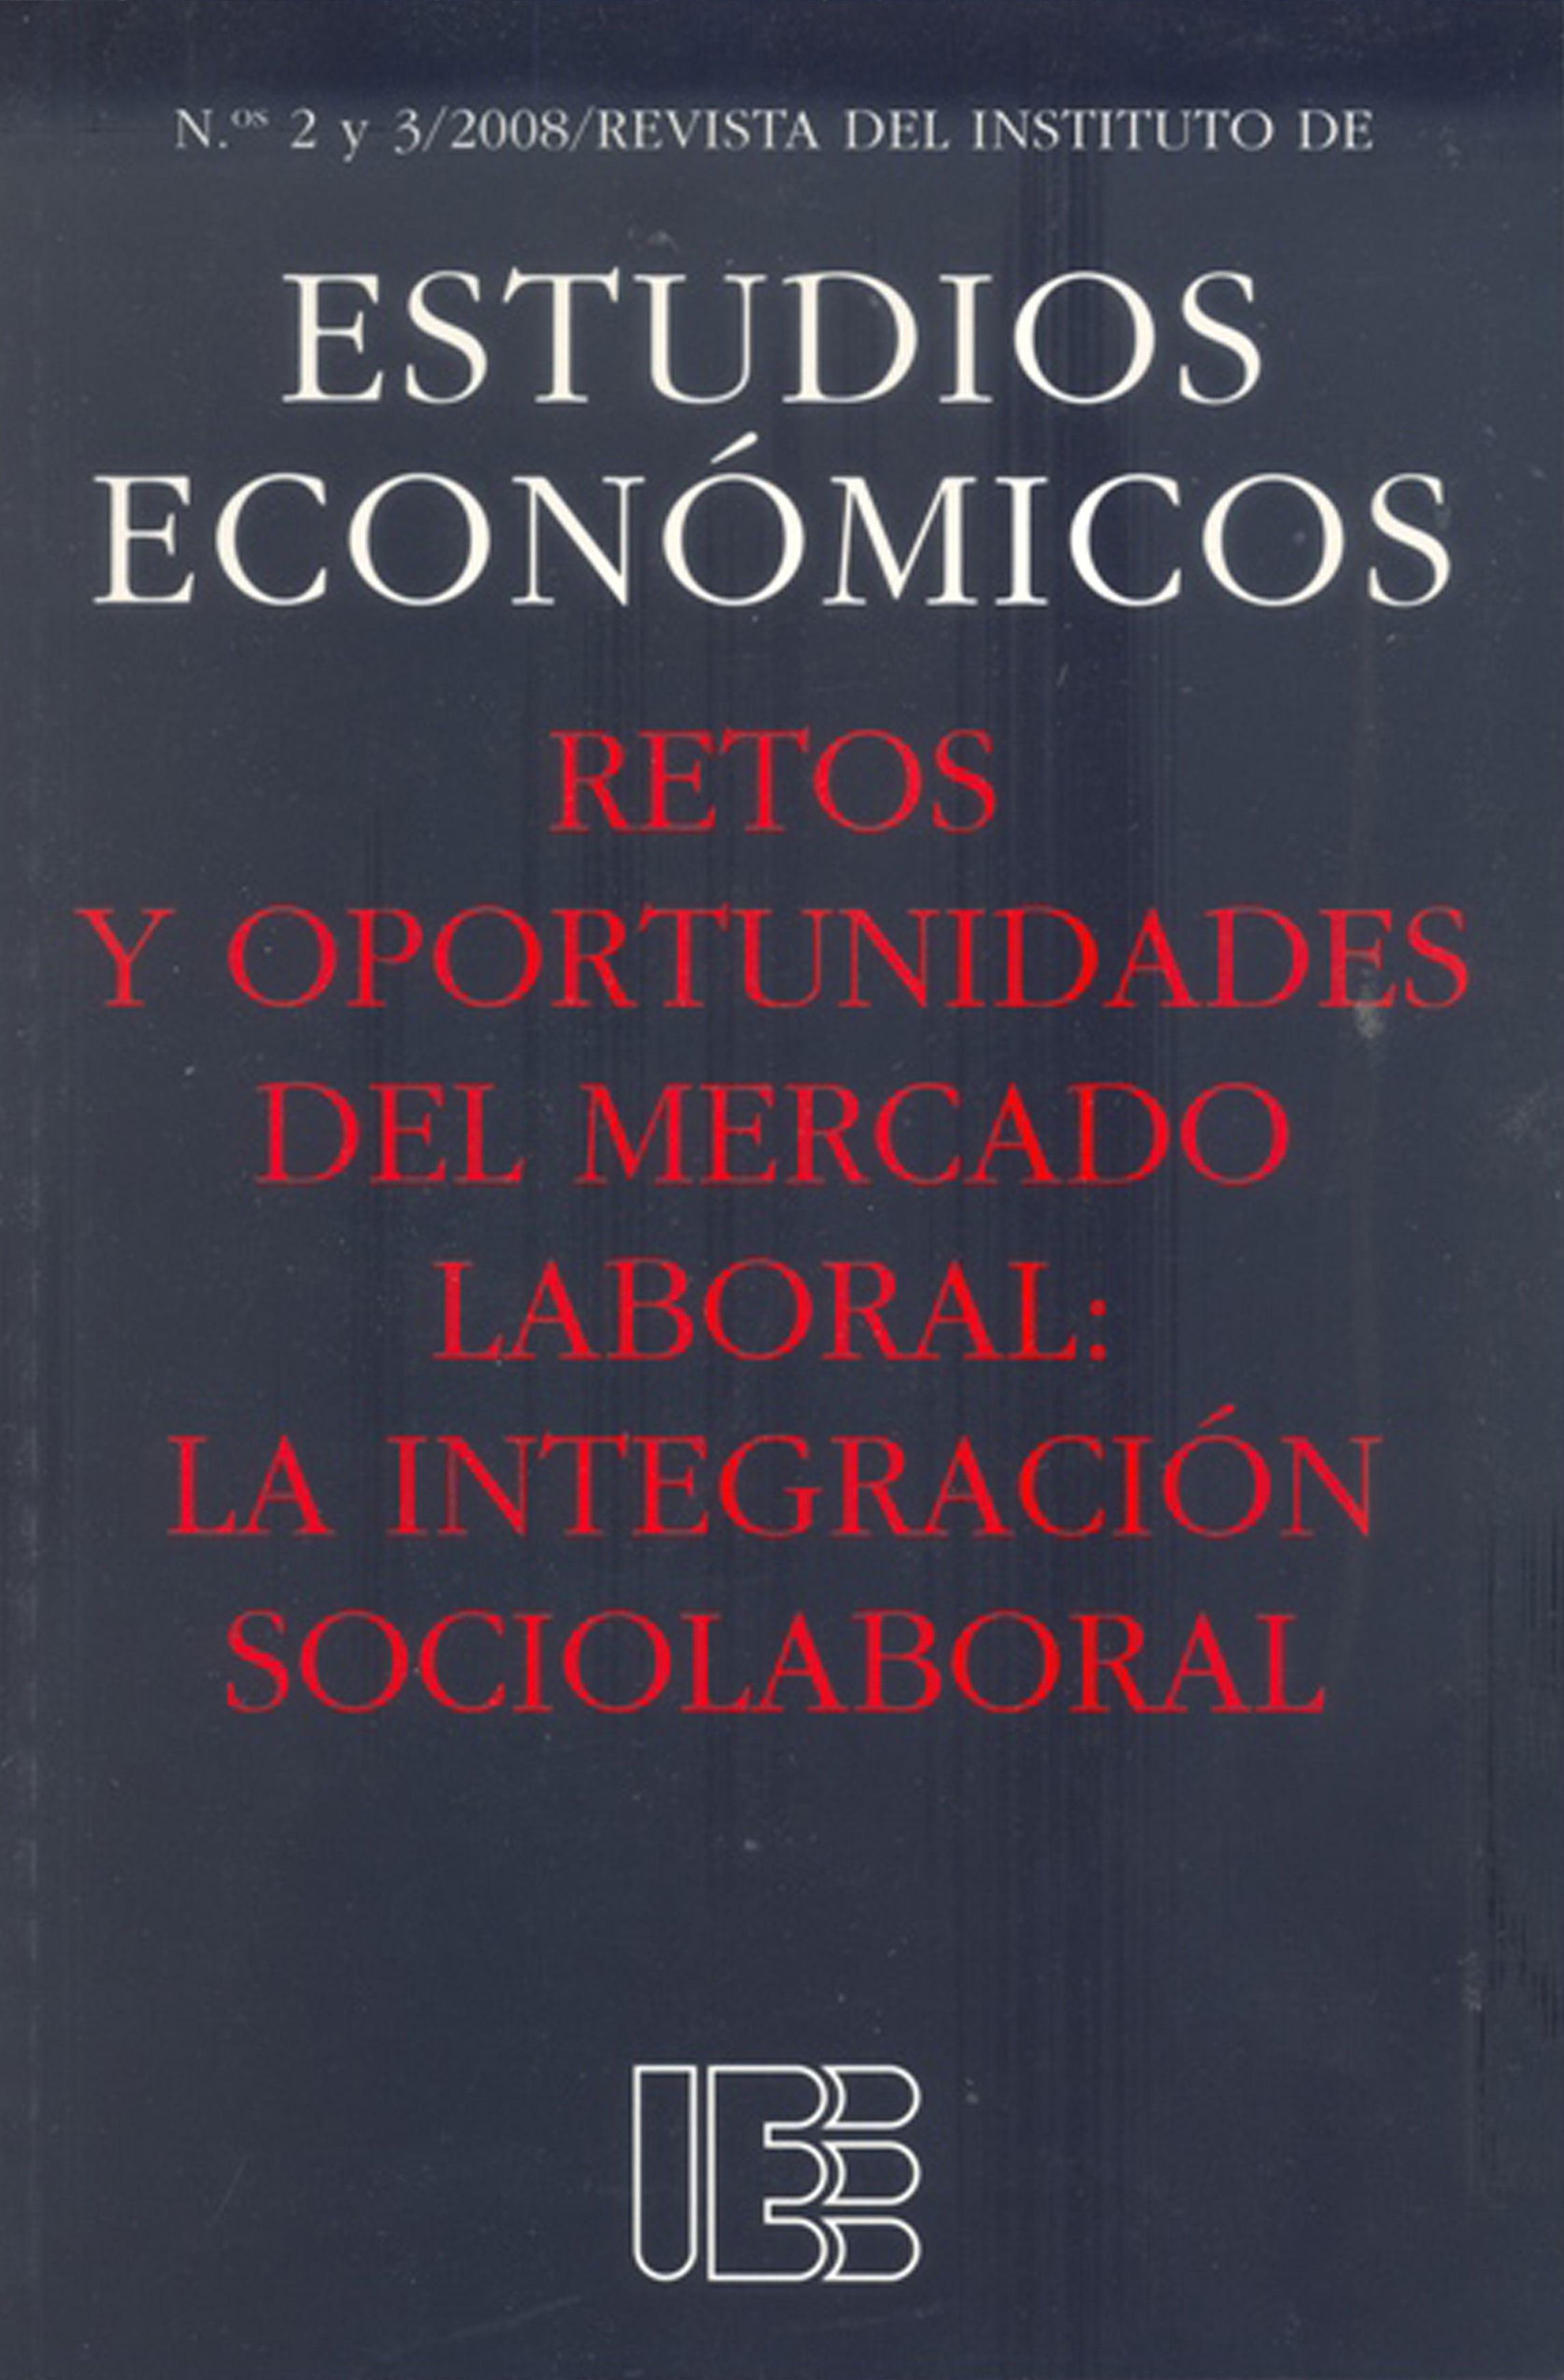 2_3-retos-oportunidades-mercado2008